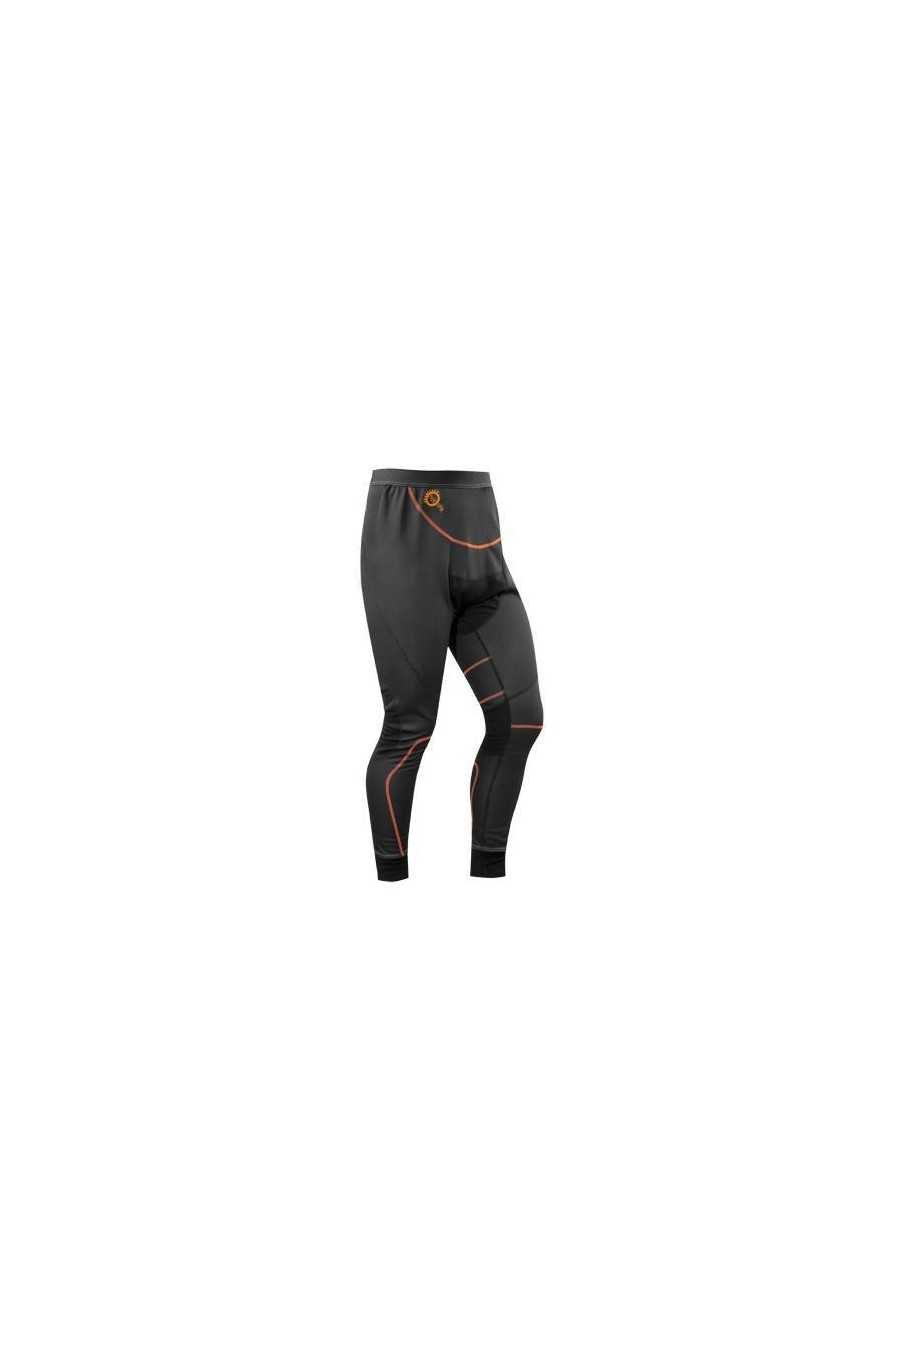 Pantalone Termico Thermo Trouser Lady